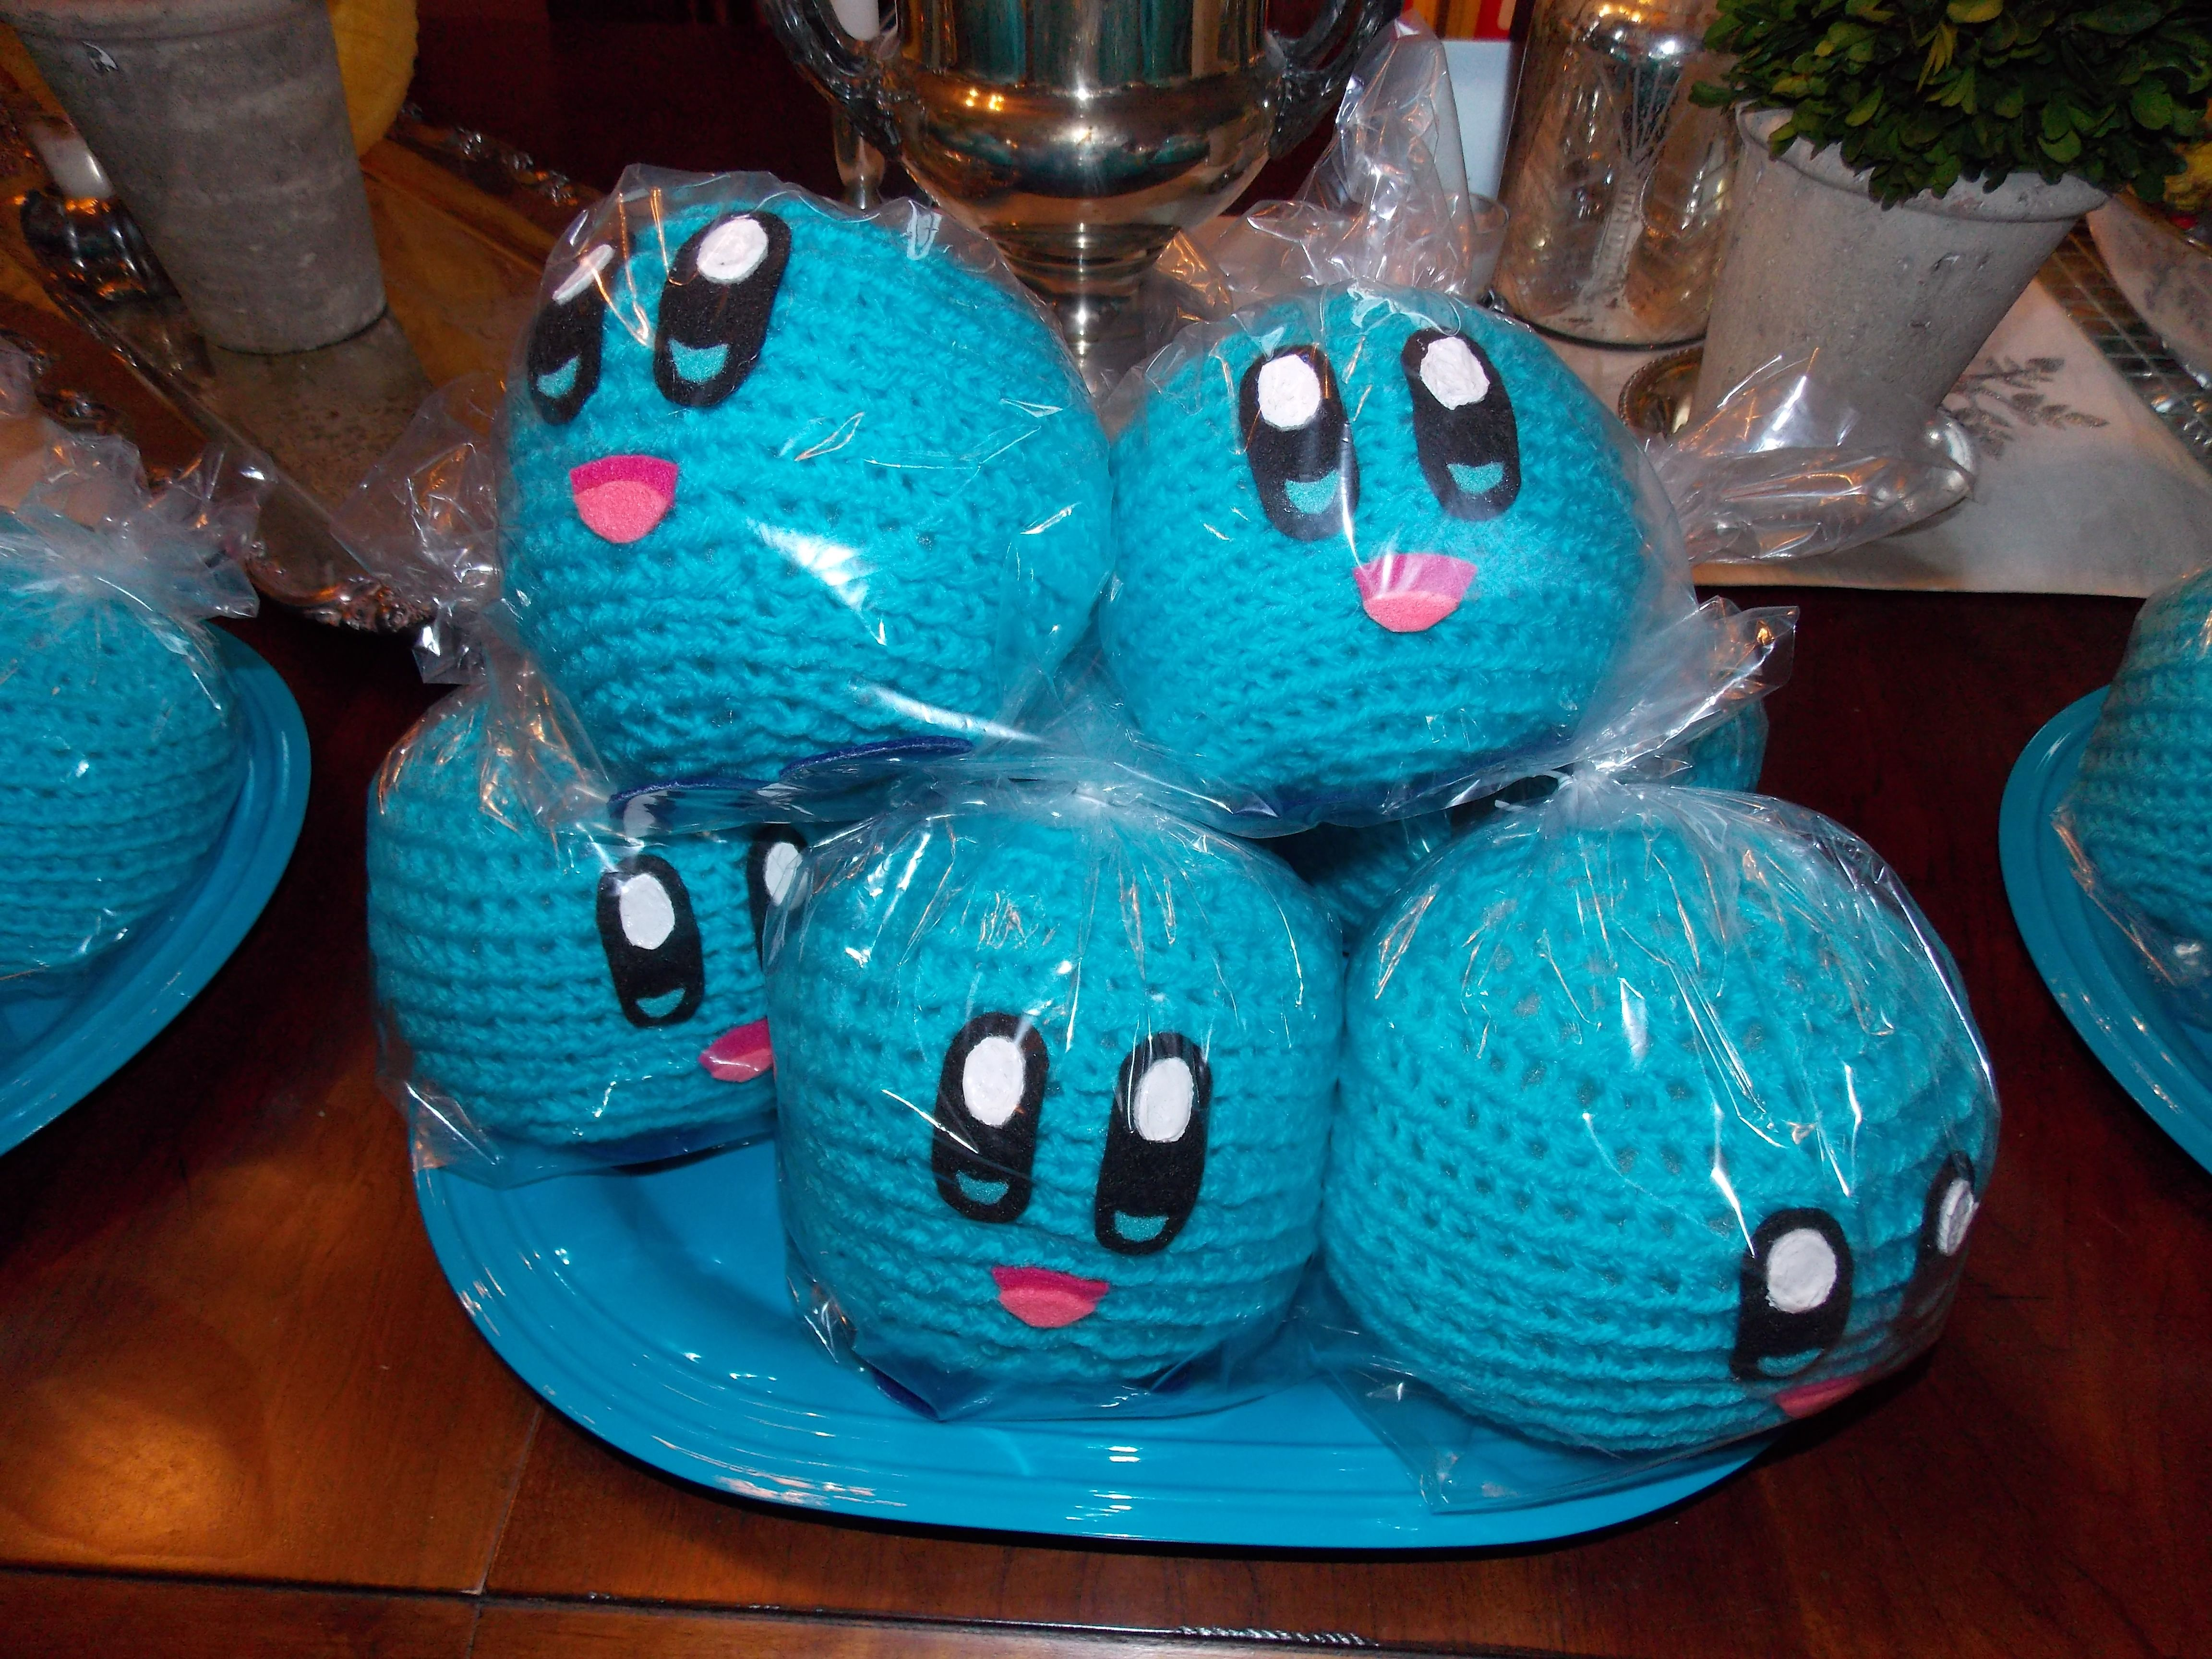 Kirby Yarn Ball Party Favors Purchased The Yarn Balls From Etsy